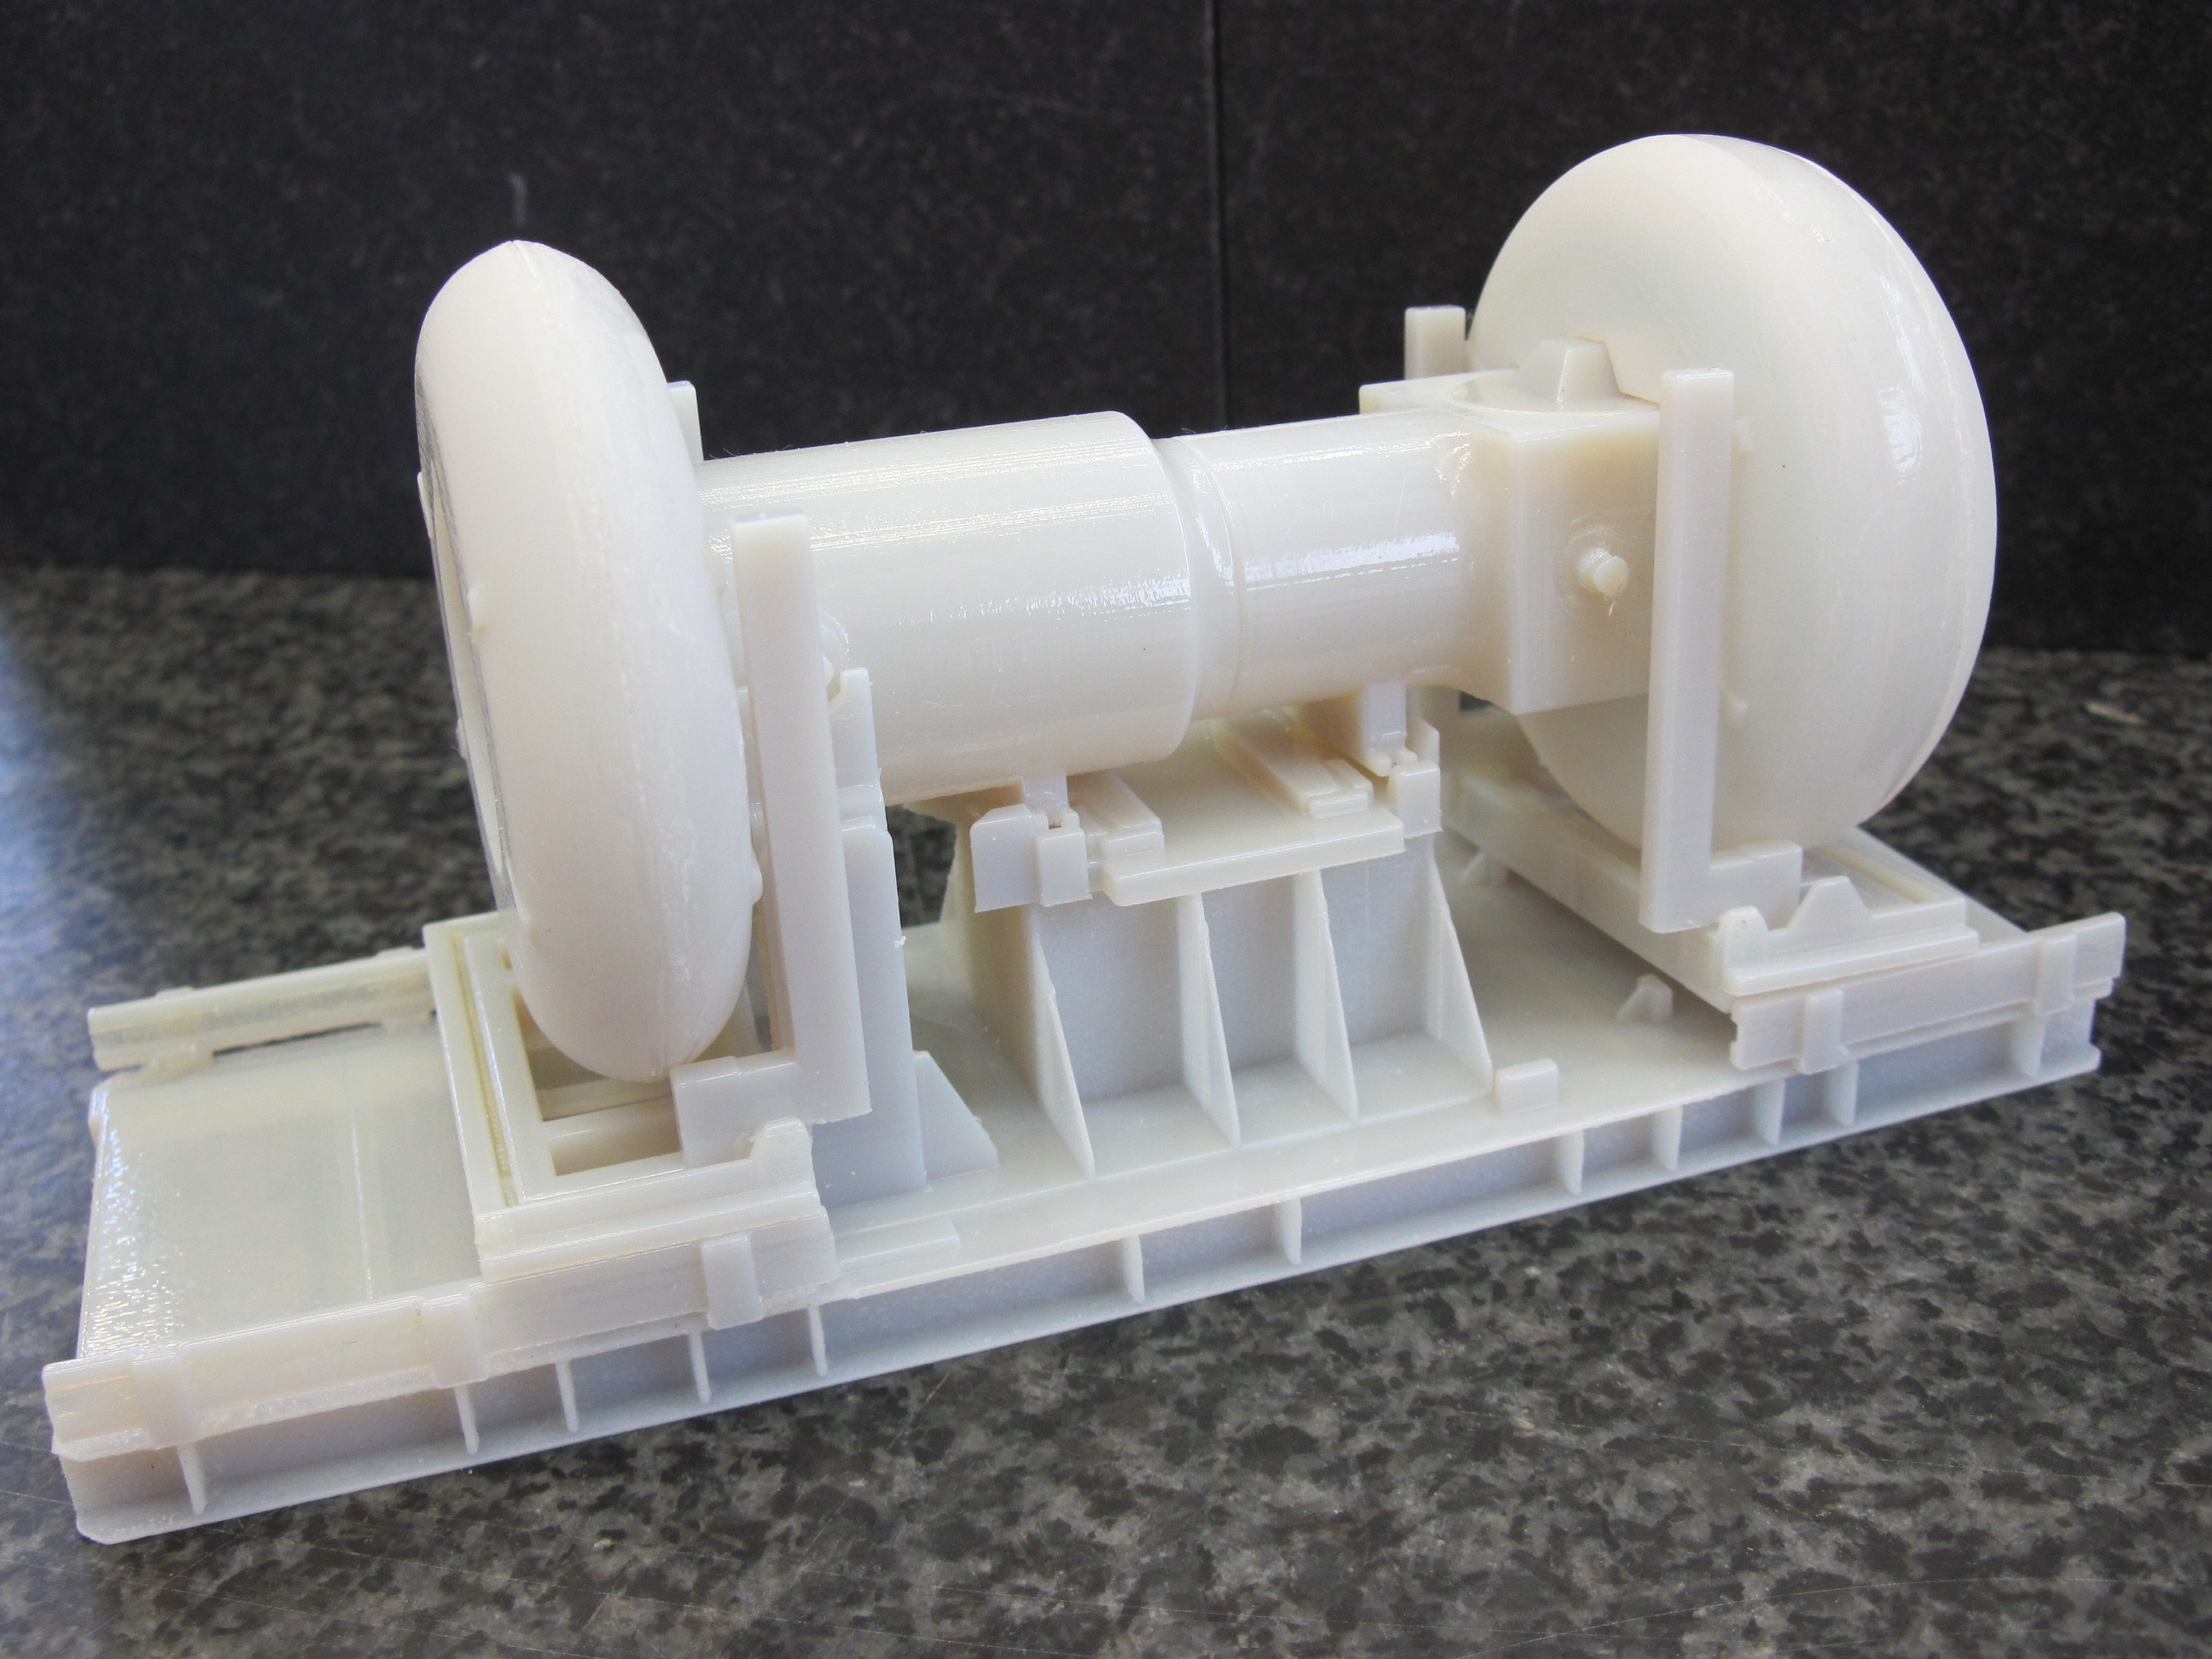 White plastic component somewhat similar to a sewing machine in shape, on an integral base, with various connectors and flanges all part of the same unit.